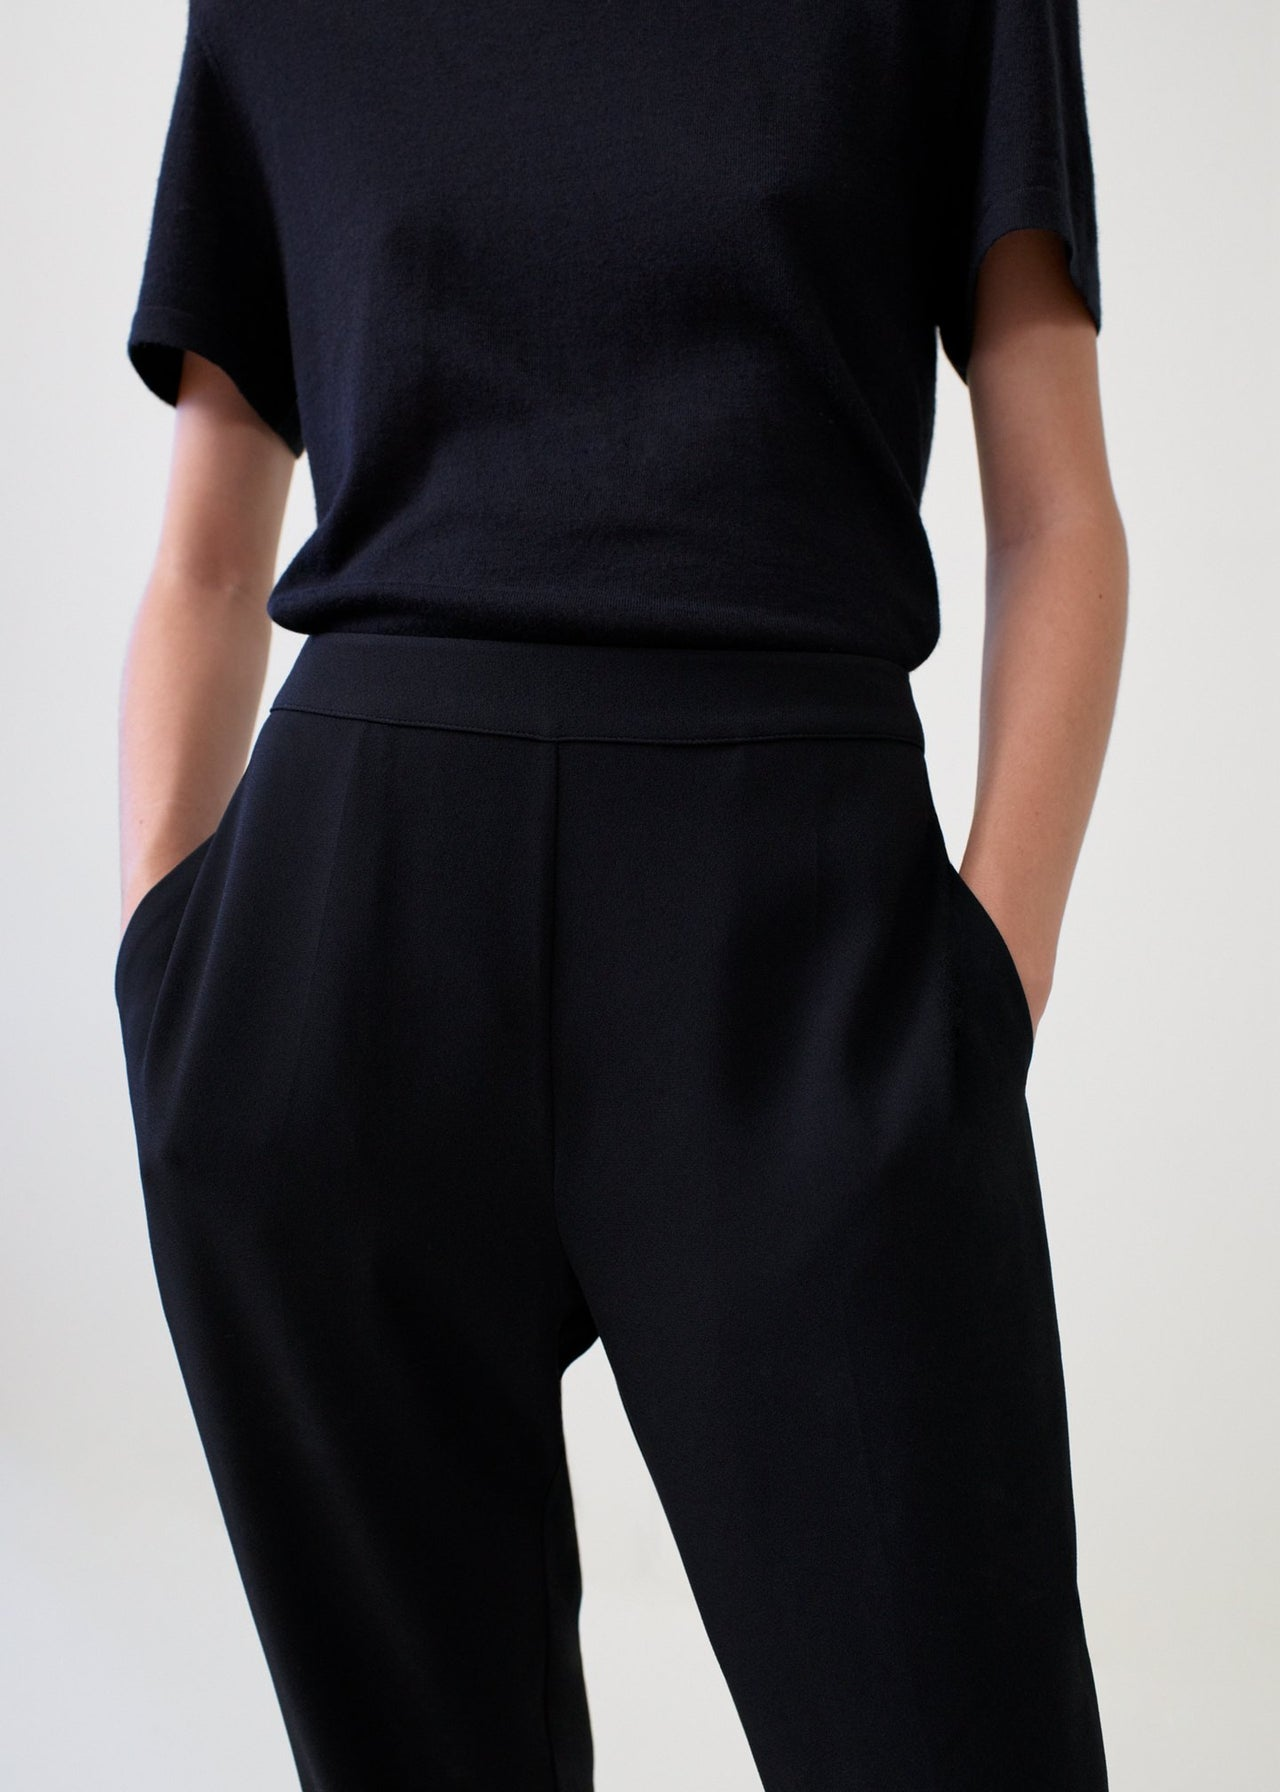 Black Cashmere T-Shirt and Jogger Pants